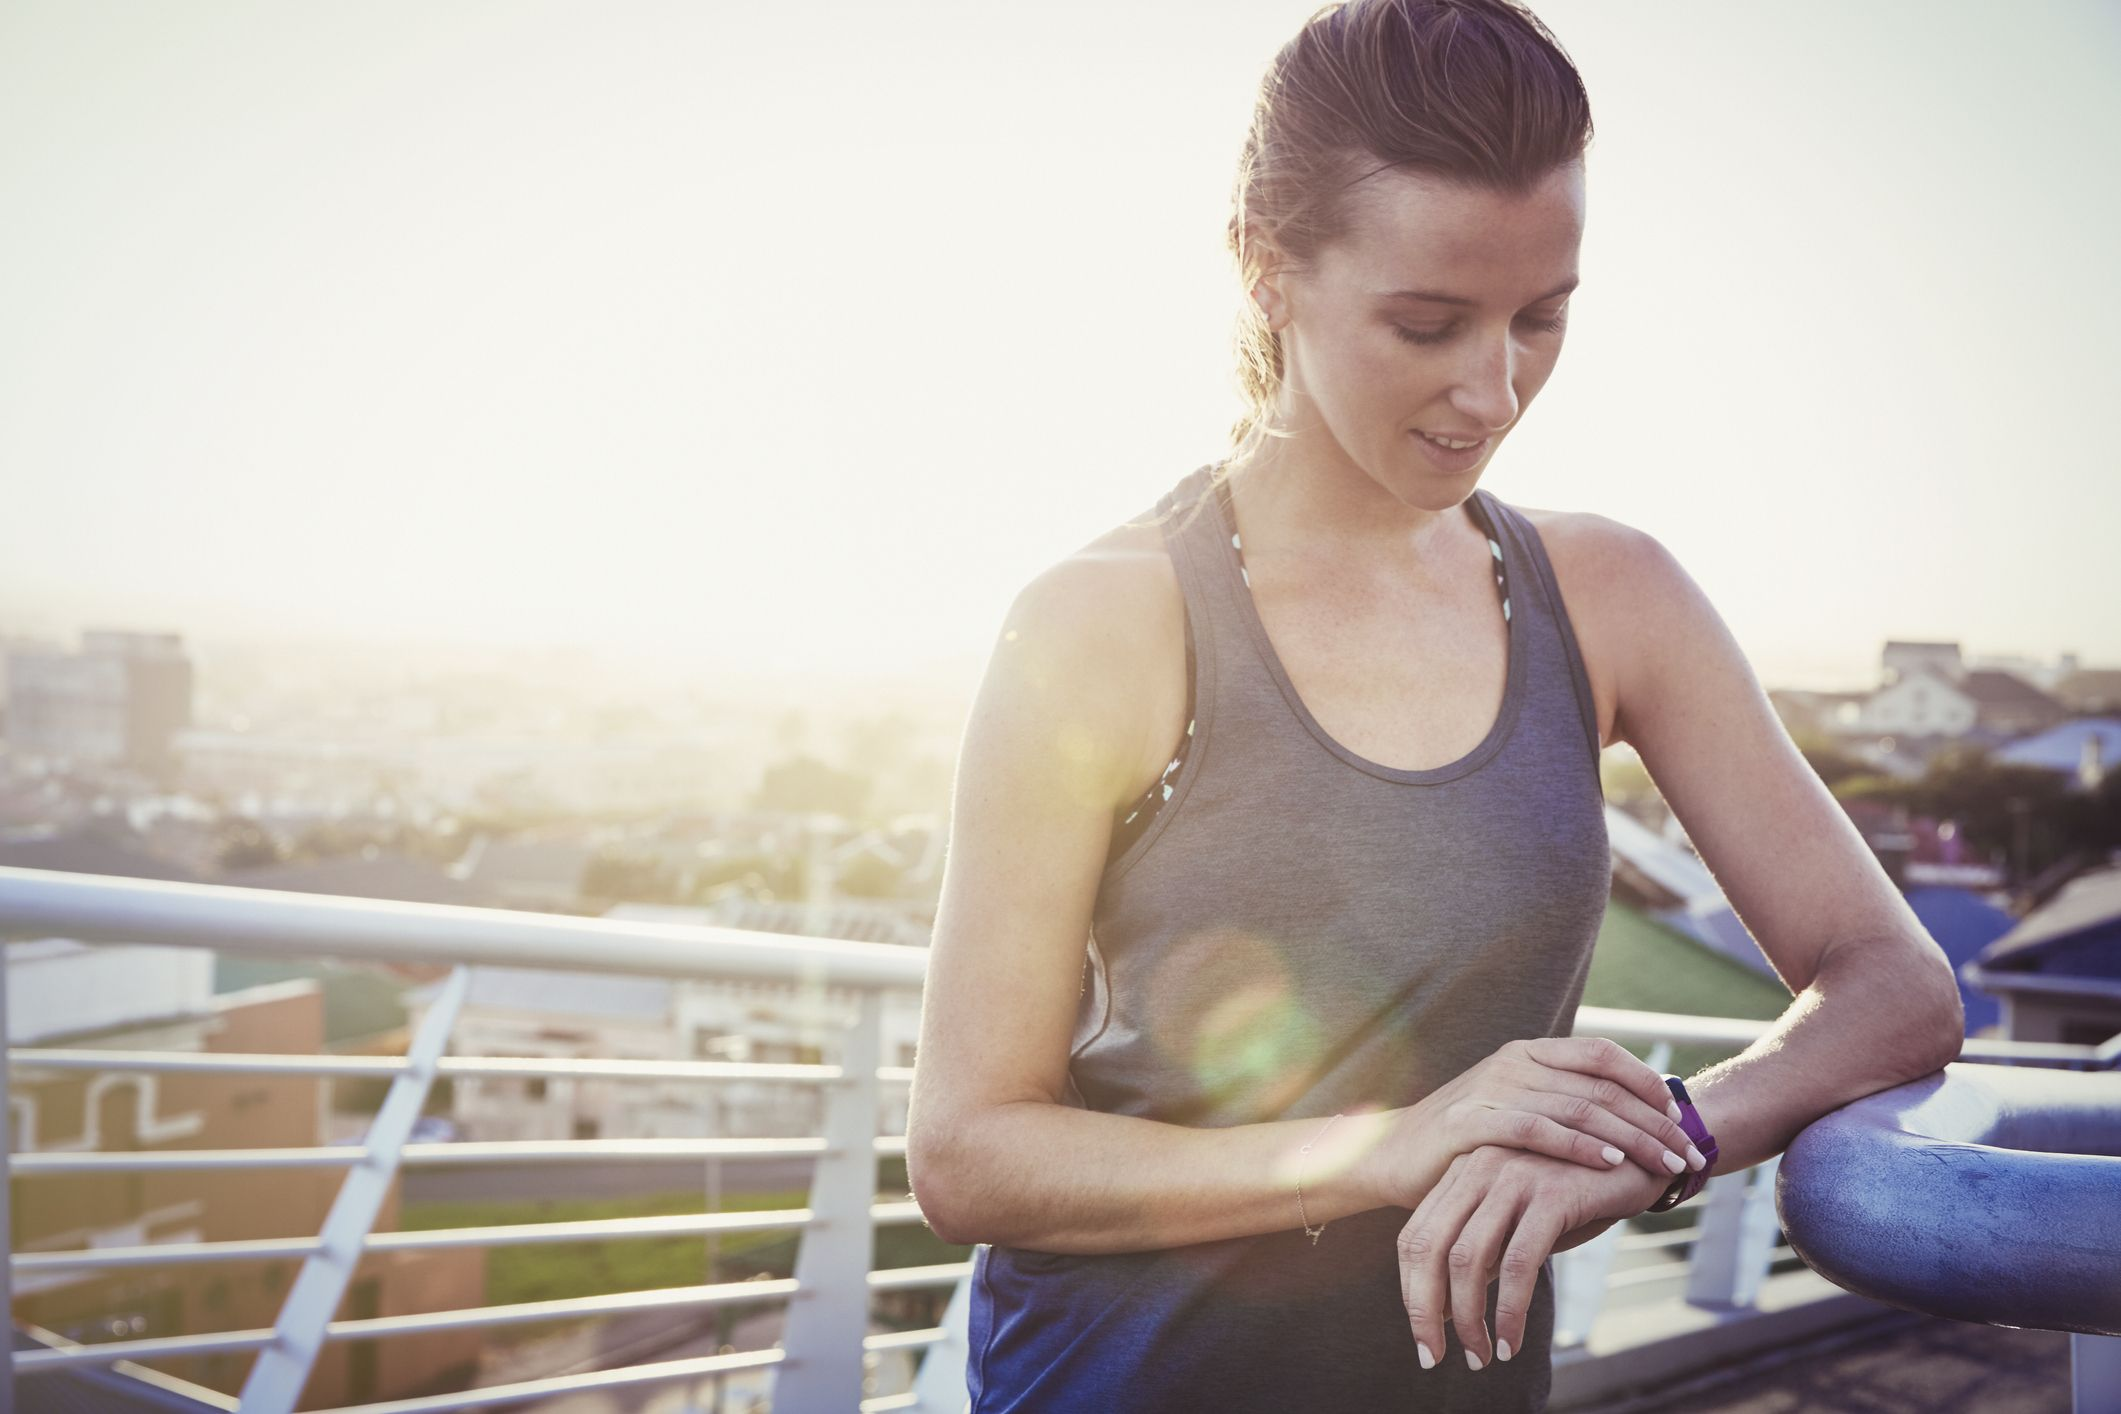 Your Apple Watch May Help Detect a Heart Problem More Common in Endurance Athletes